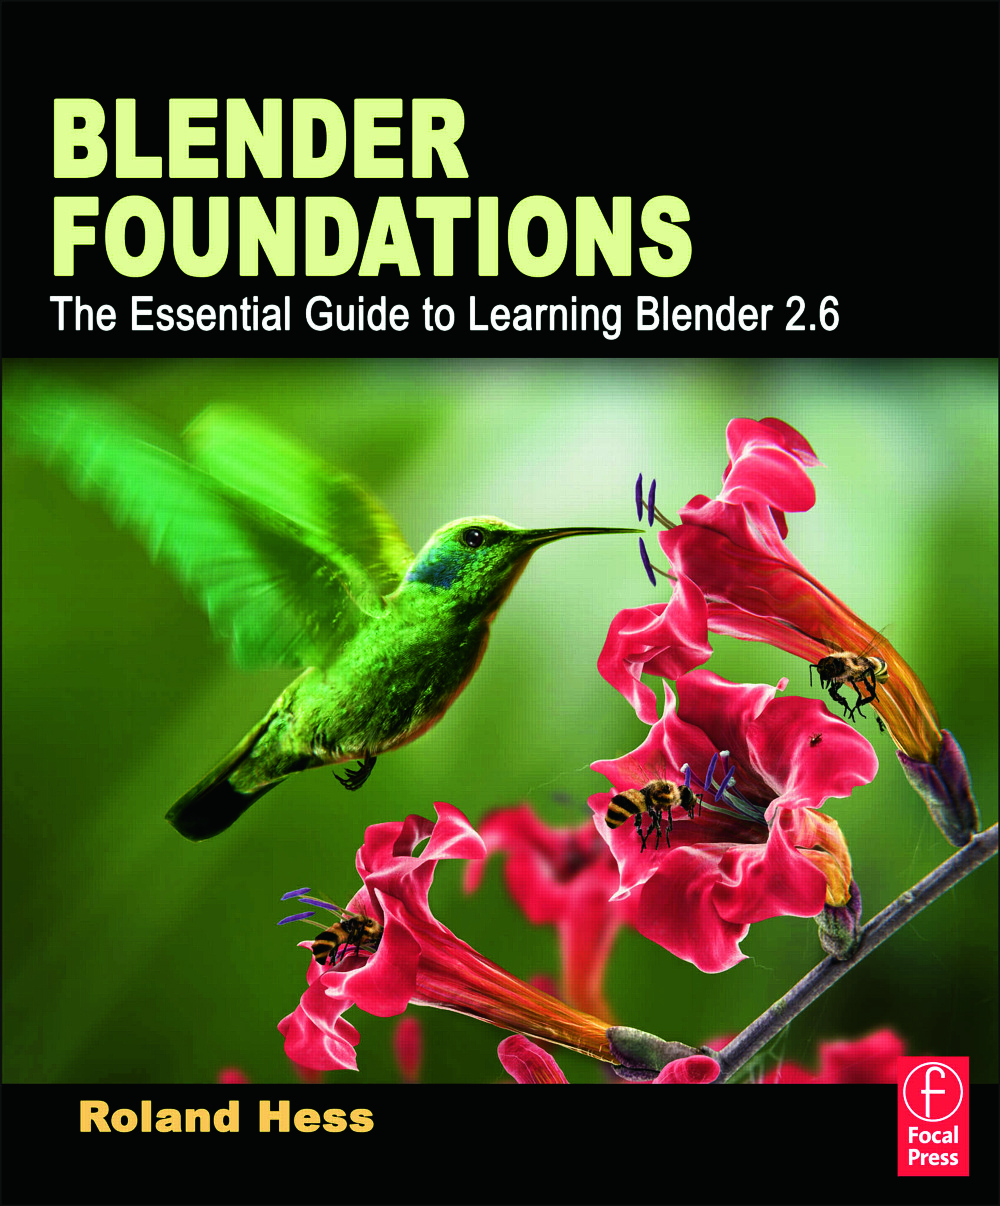 Blender Foundations: The Essential Guide to Learning Blender 2.6 book cover